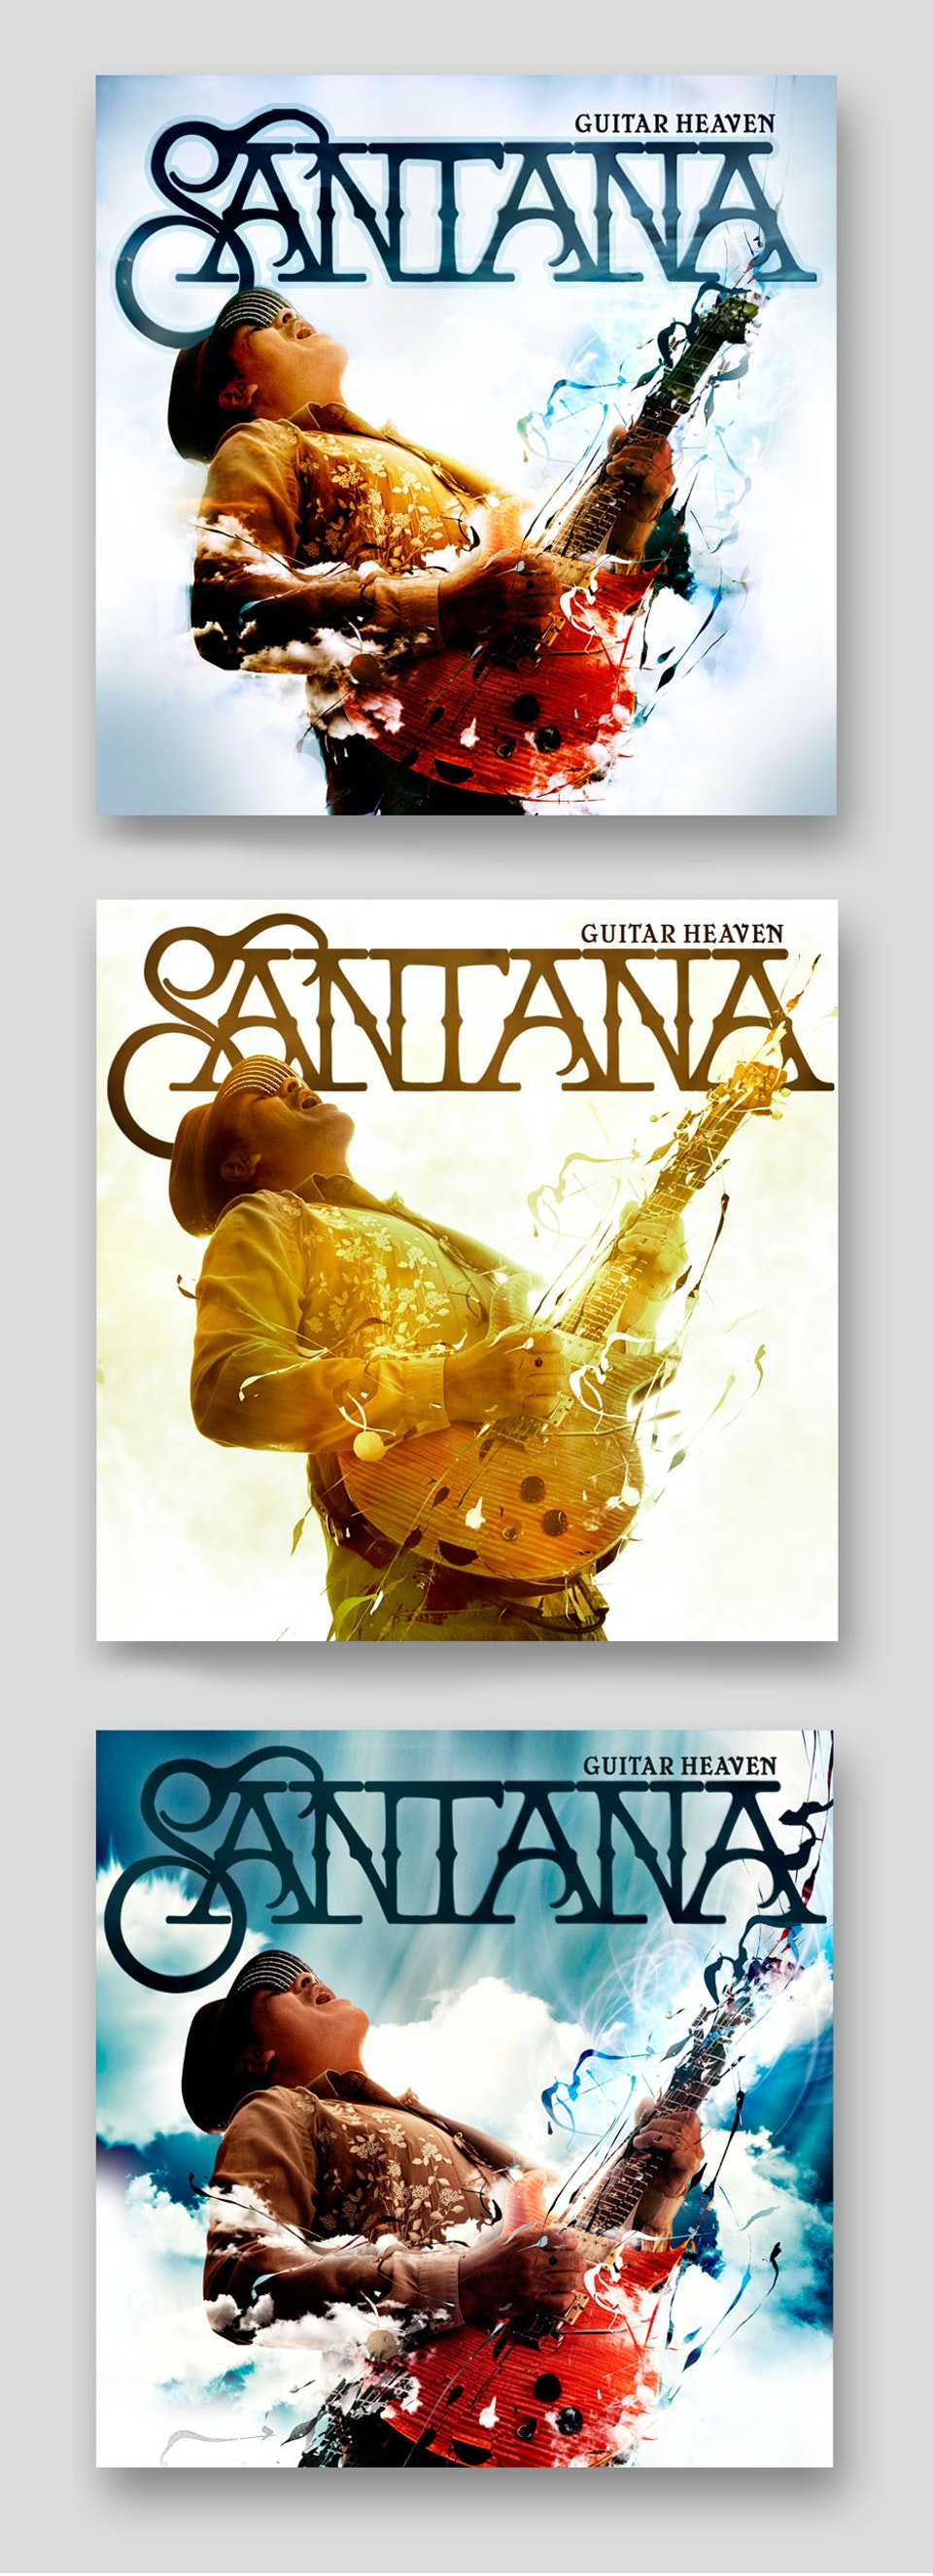 Santana Guitar Heaven - Cover comps